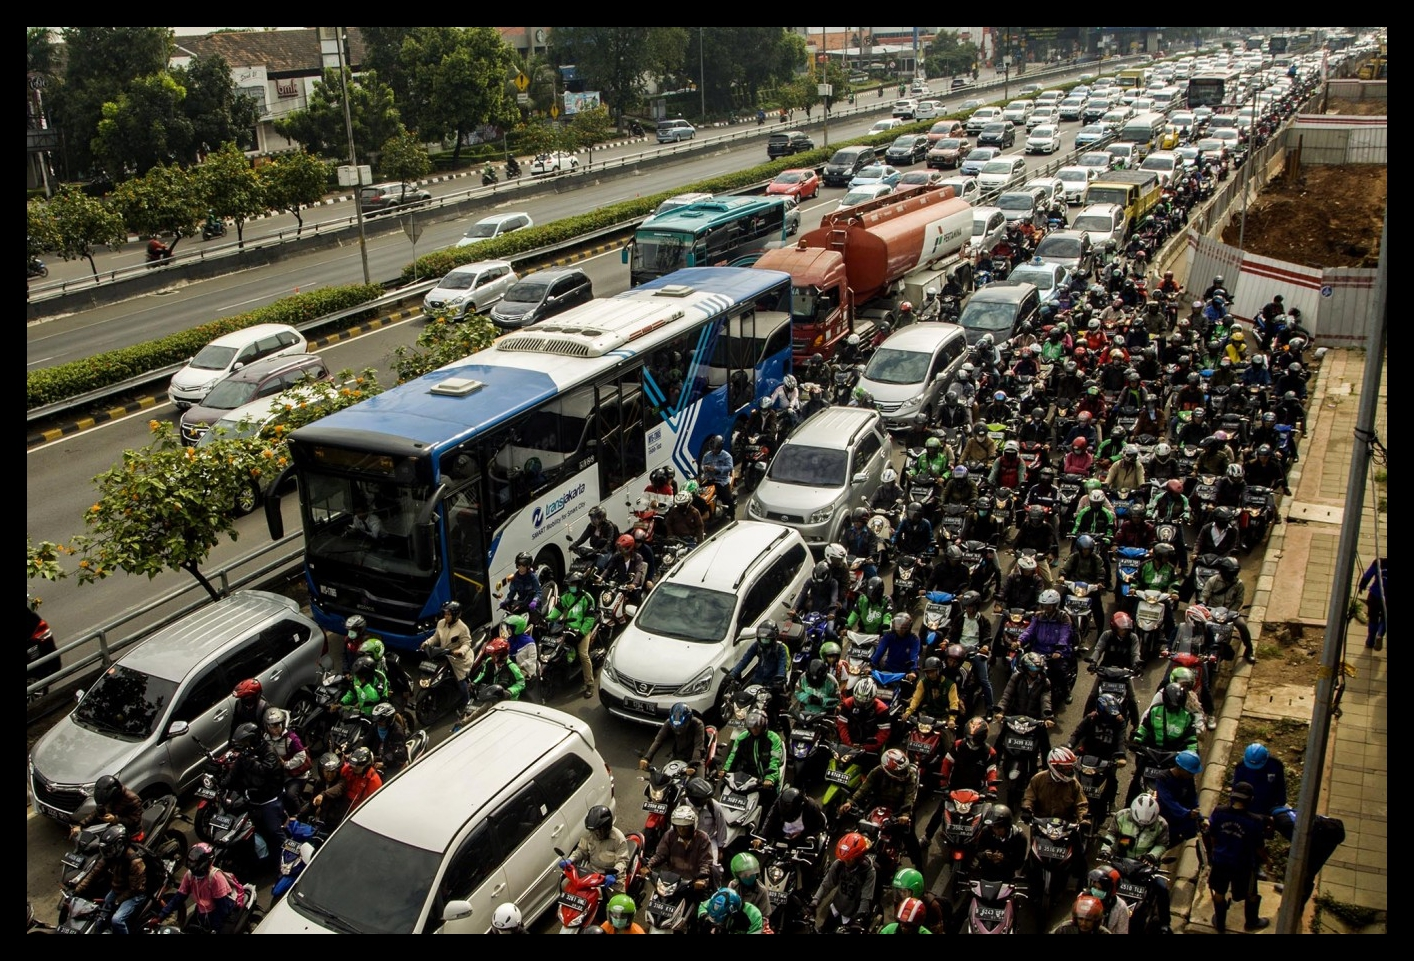 Jakartans spend 22 days in traffic jam per year: Survey - The Jakarta PostJakarta / Wed, November 1, 2017 / 07:02 pmJakartans spend a longer time in traffic compared to citizens of other major Asian cities, a study revealed on Wednesday.App-based transportation firm Uber, in collaboration with the Boston Consulting Group, released a study revealing that drivers in Jakarta spend an average of 22 days a year in traffic…READ MORE